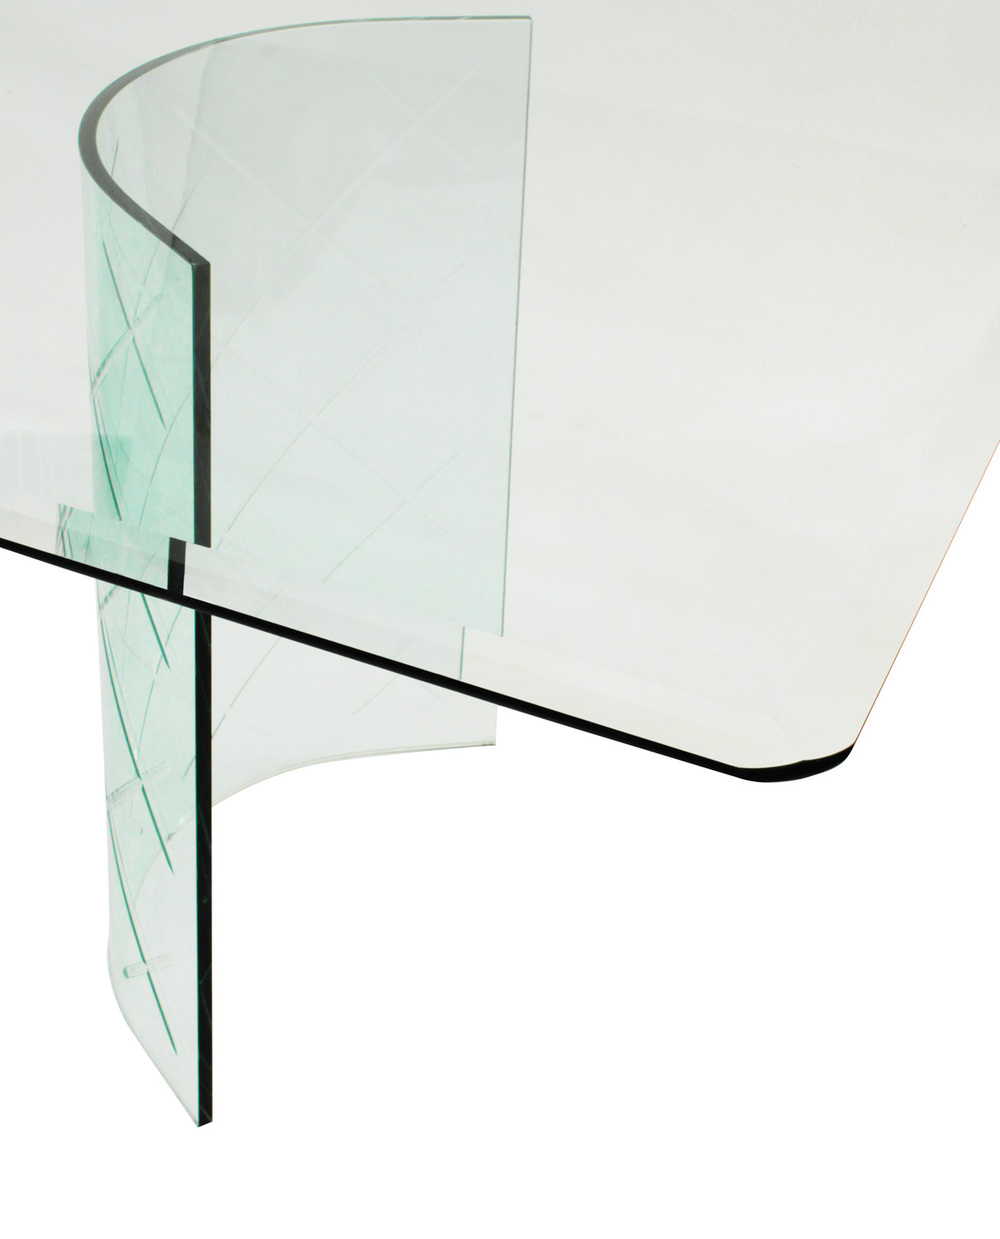 50's 75 curved glass bases crissc diningtable131 detail2 hires.jpg